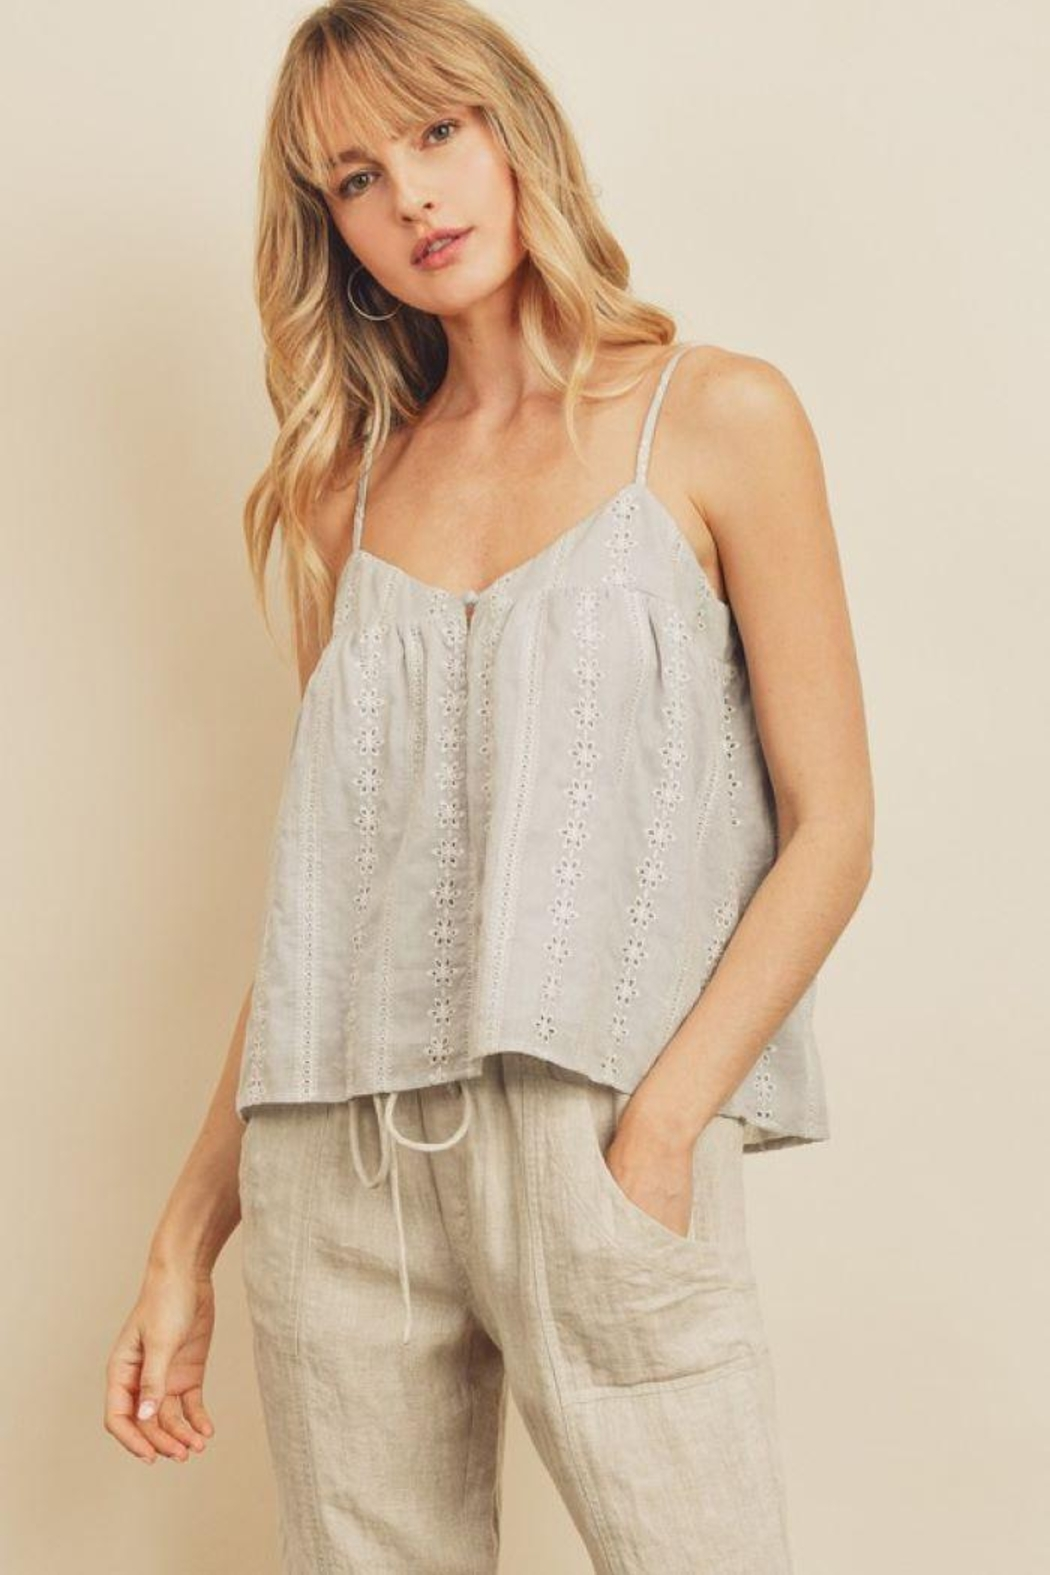 dress forum Striped Eyelet Triangle Cami Top - Back Cropped Image